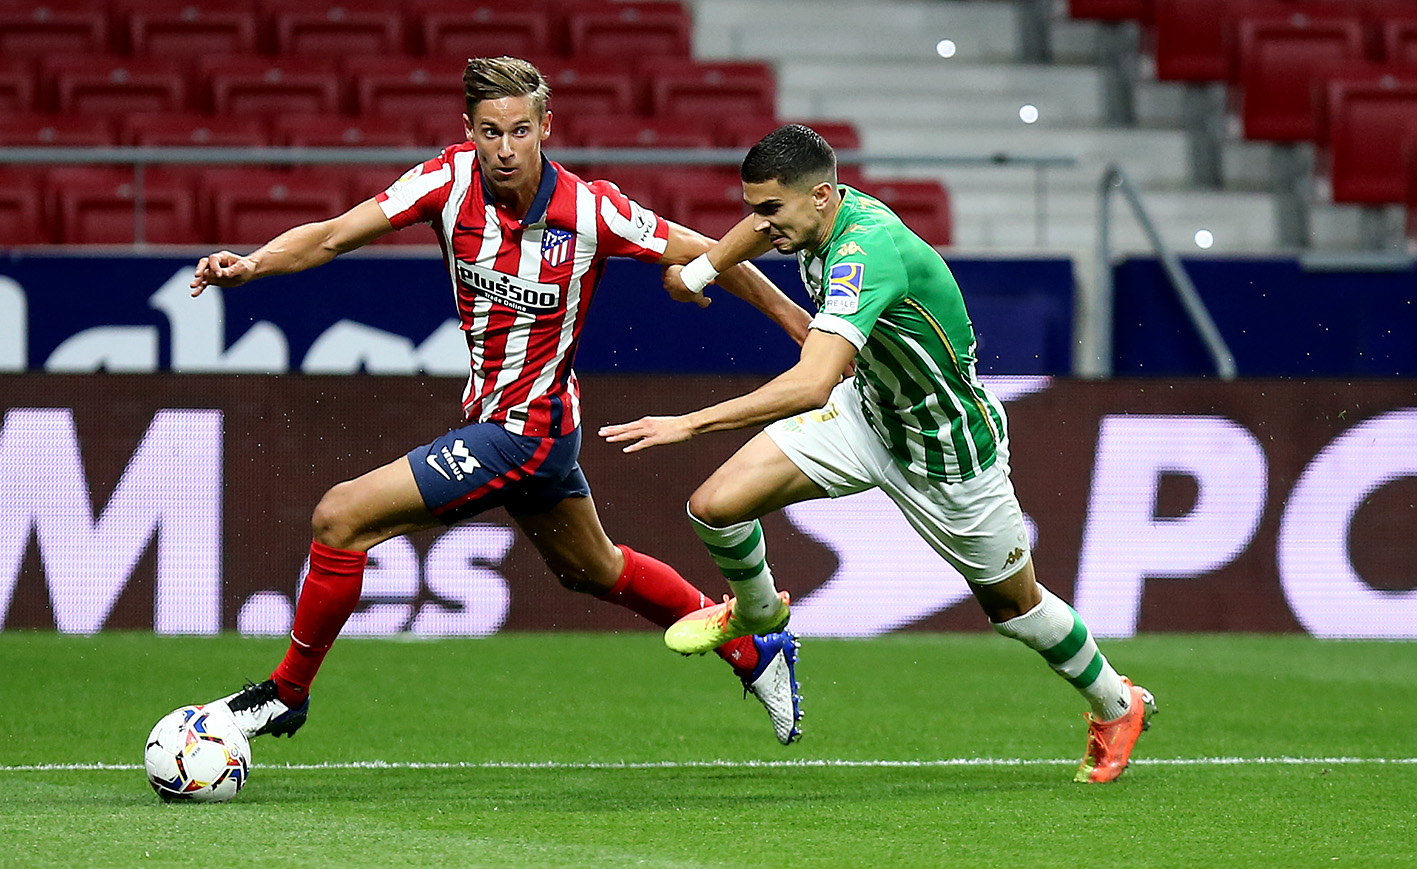 Atletico Madrid star explains the secret to his insane fitness levels